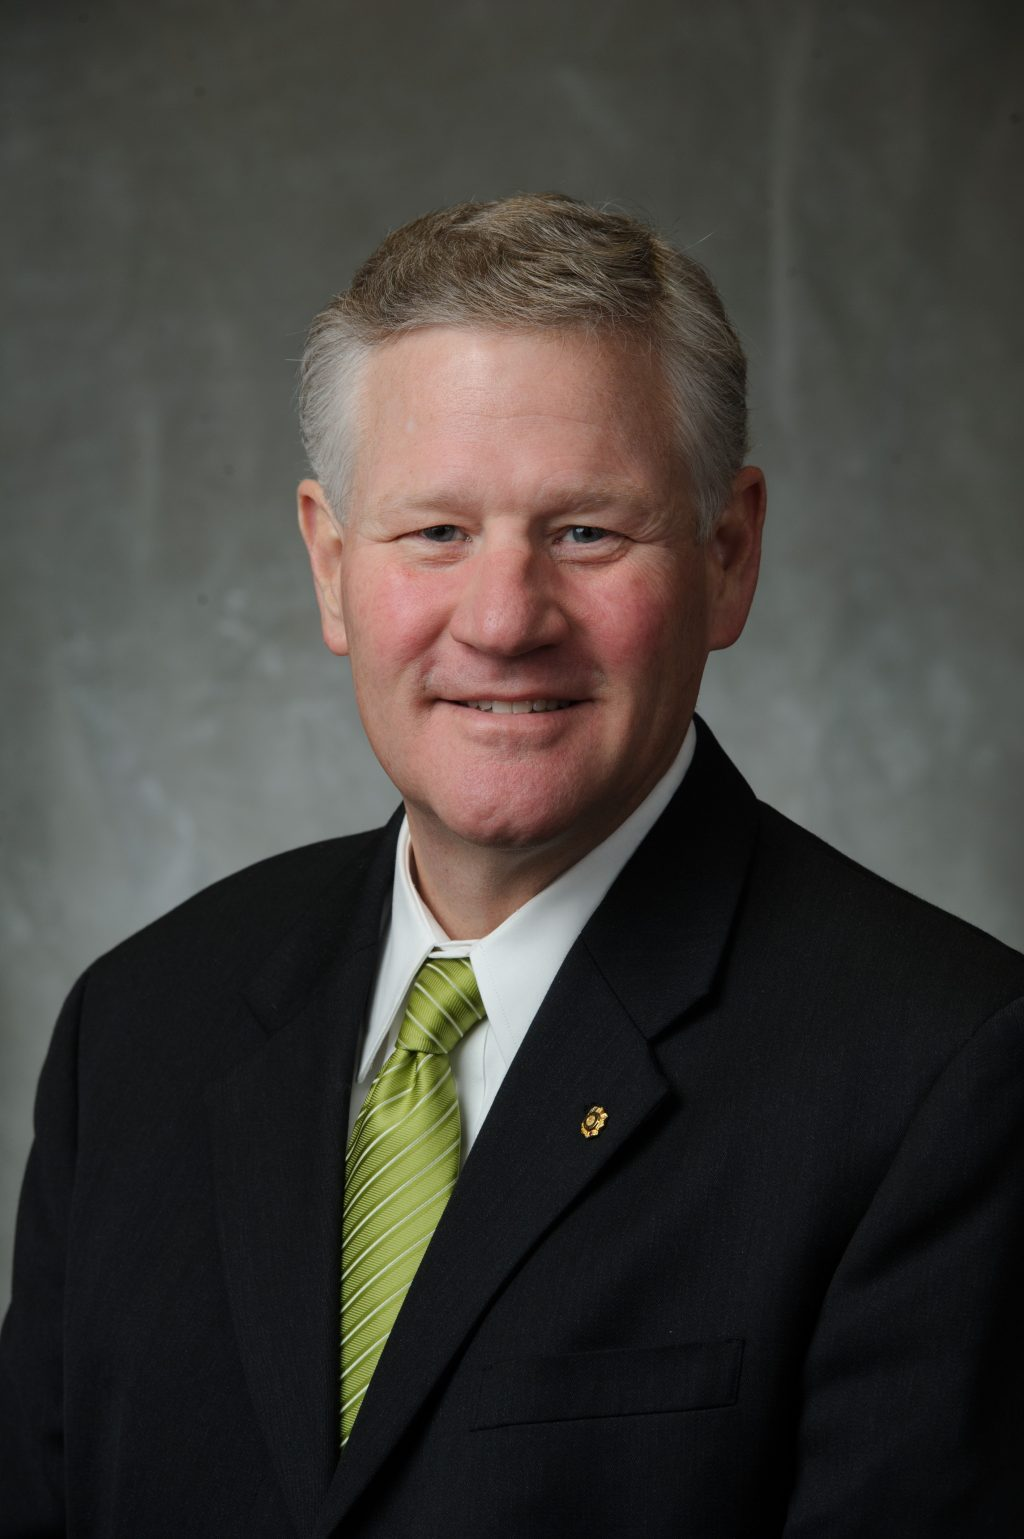 Mike Williams will serve as the eighth president of Faulkner University in Montgomery